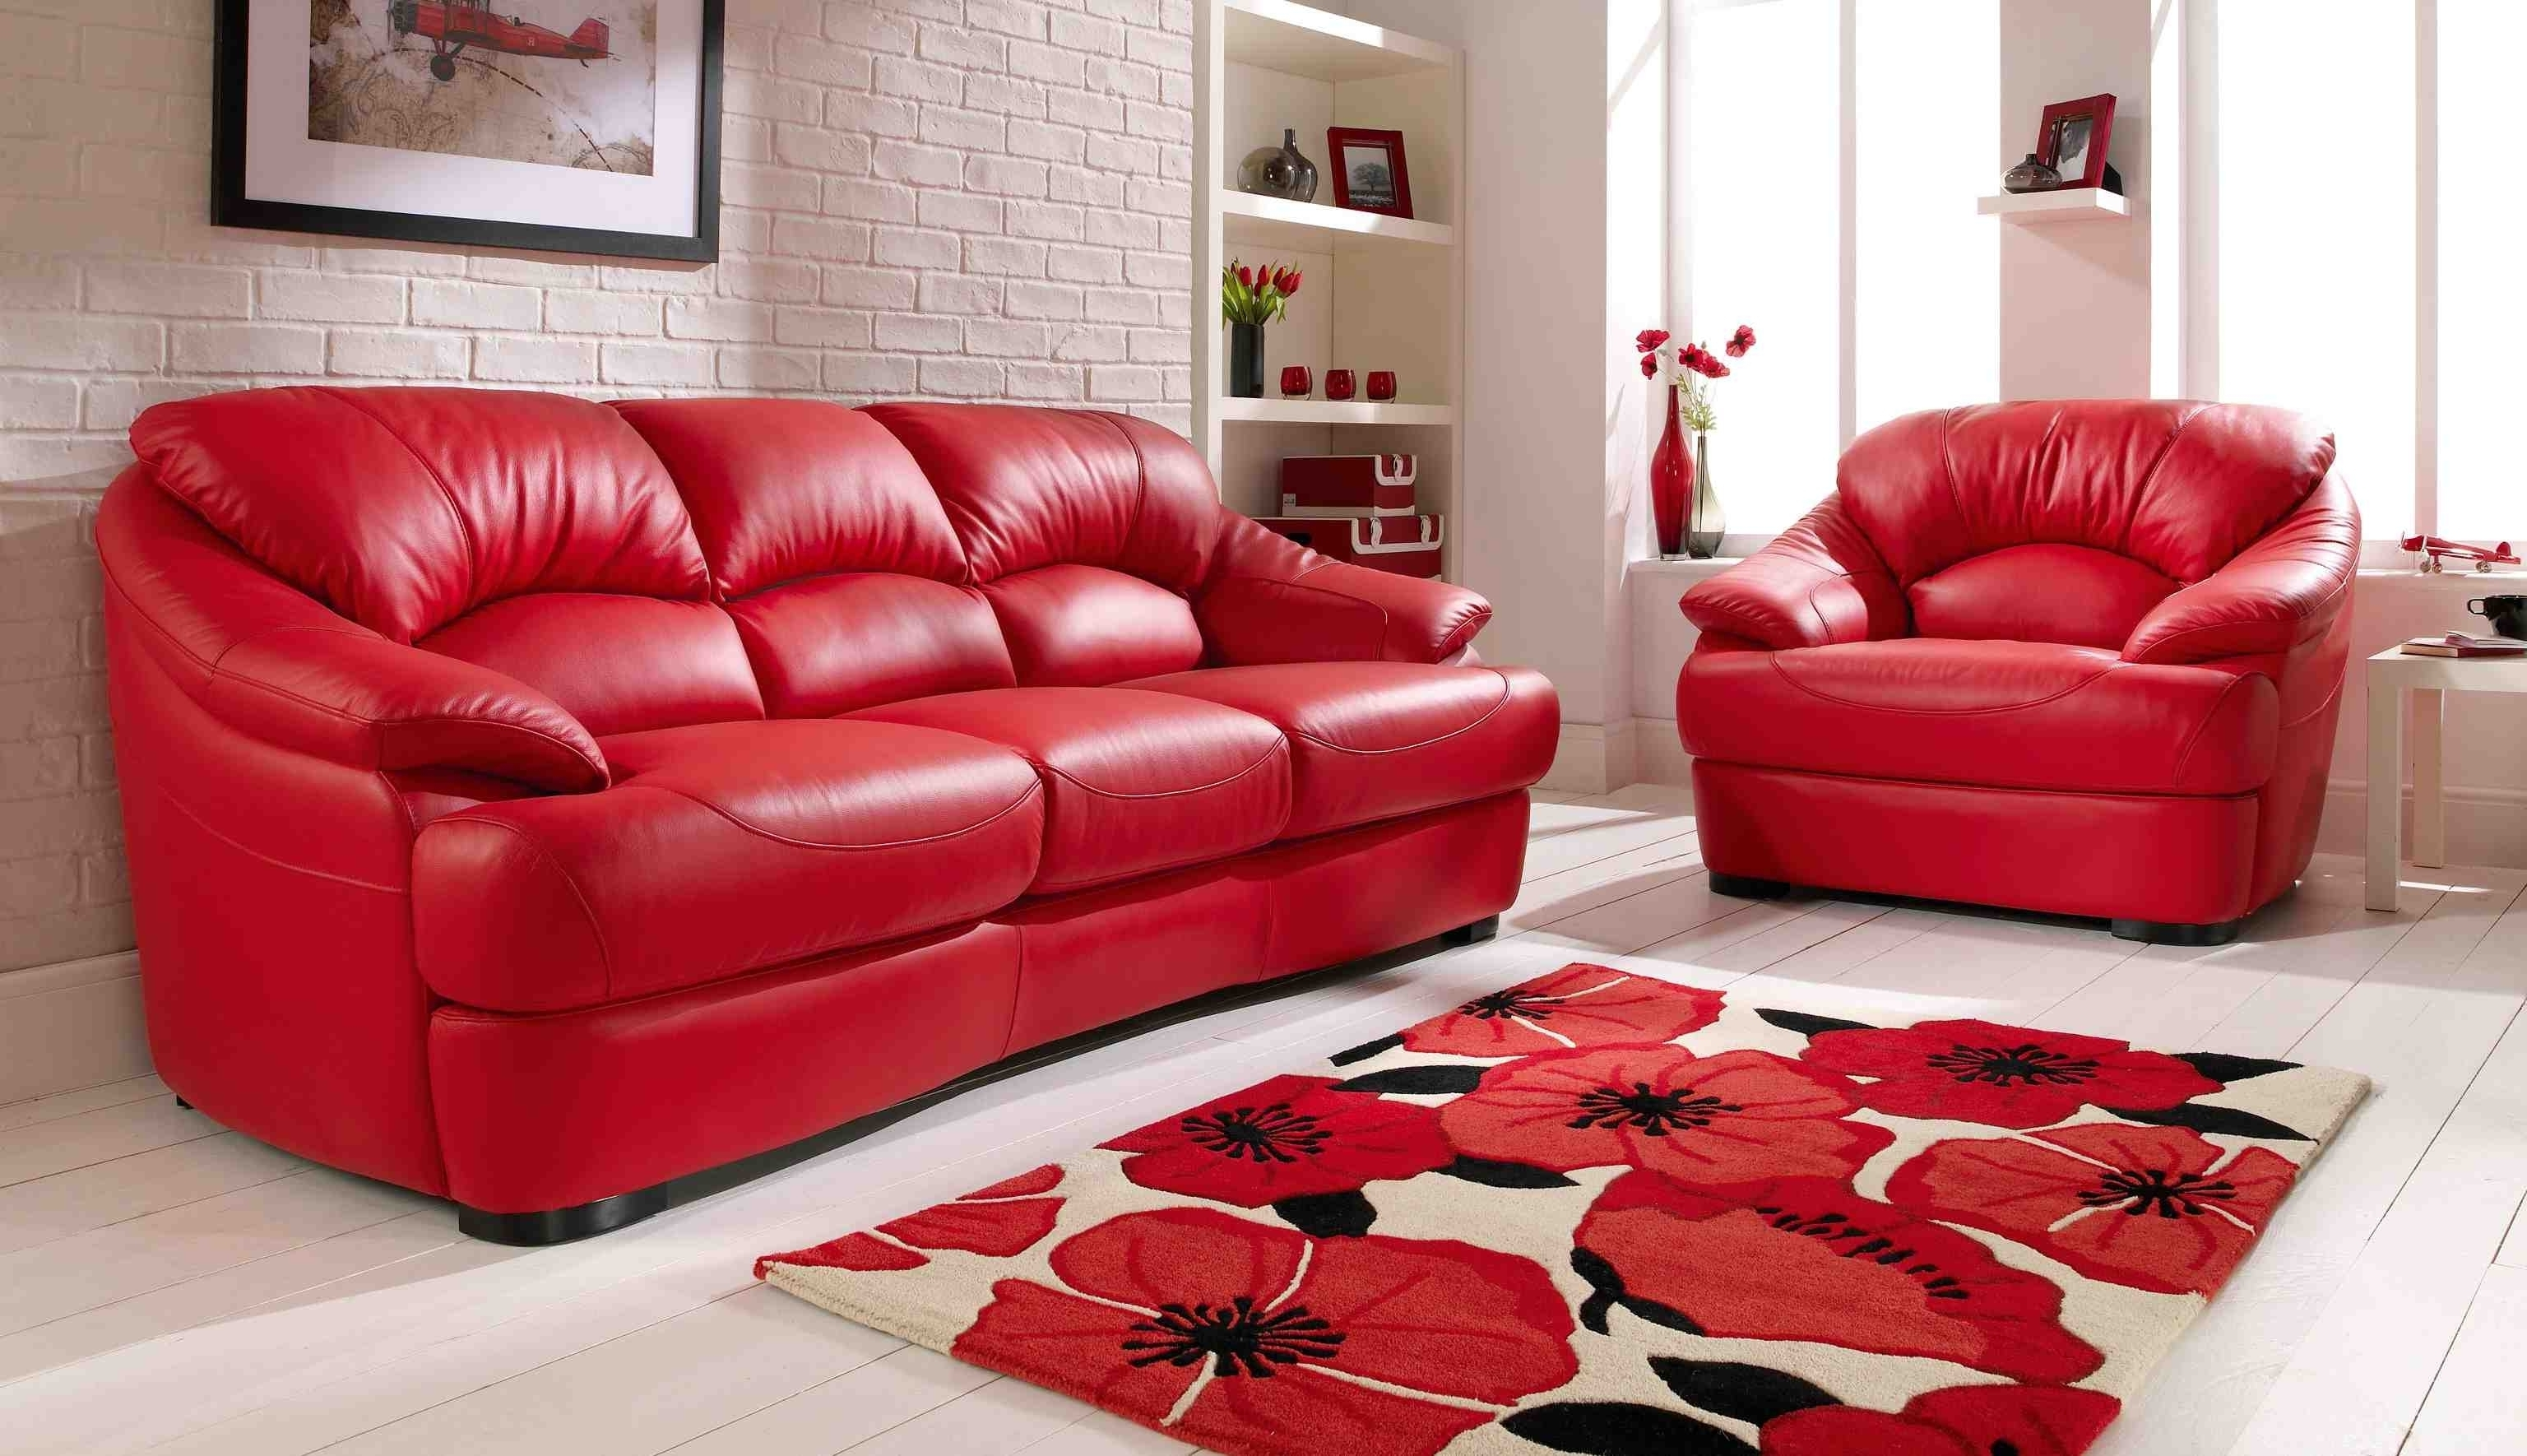 Fashionable Red Leather Sofa Living Room Ideas Home Design Ideas Pertaining To Inside Red Leather Couches For Living Room (View 3 of 15)